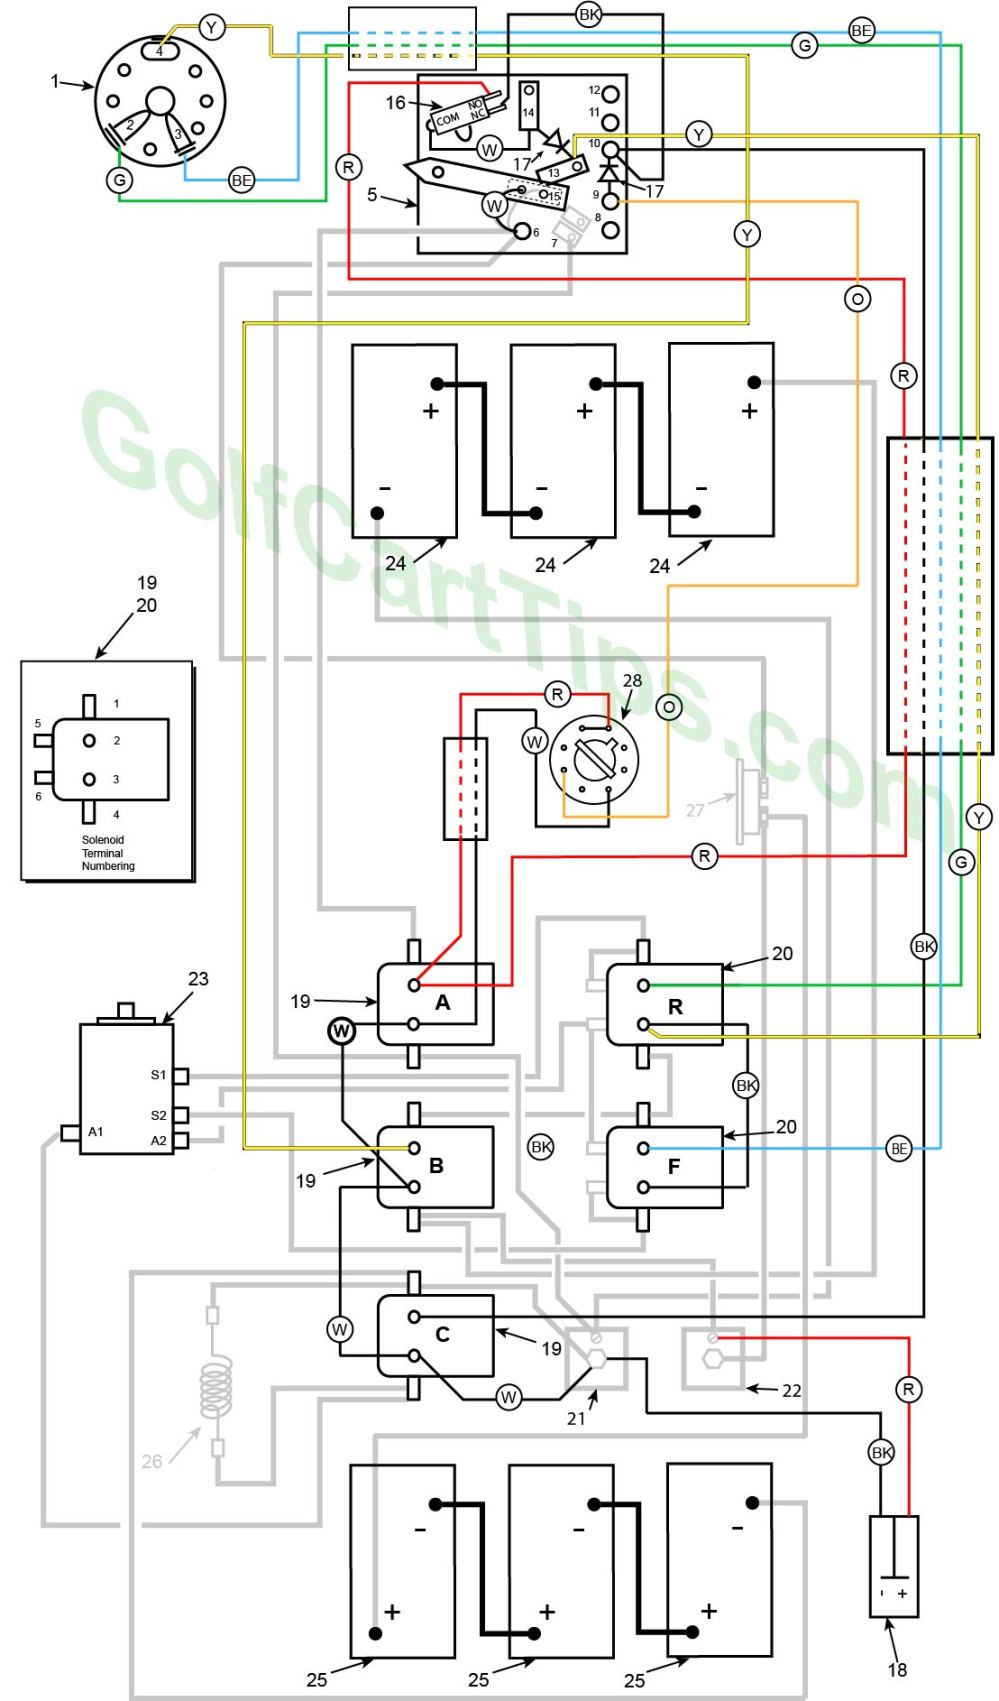 medium resolution of 1971 model de control circuit wiring diagram for 16 gauge wire harley davidson golf cart